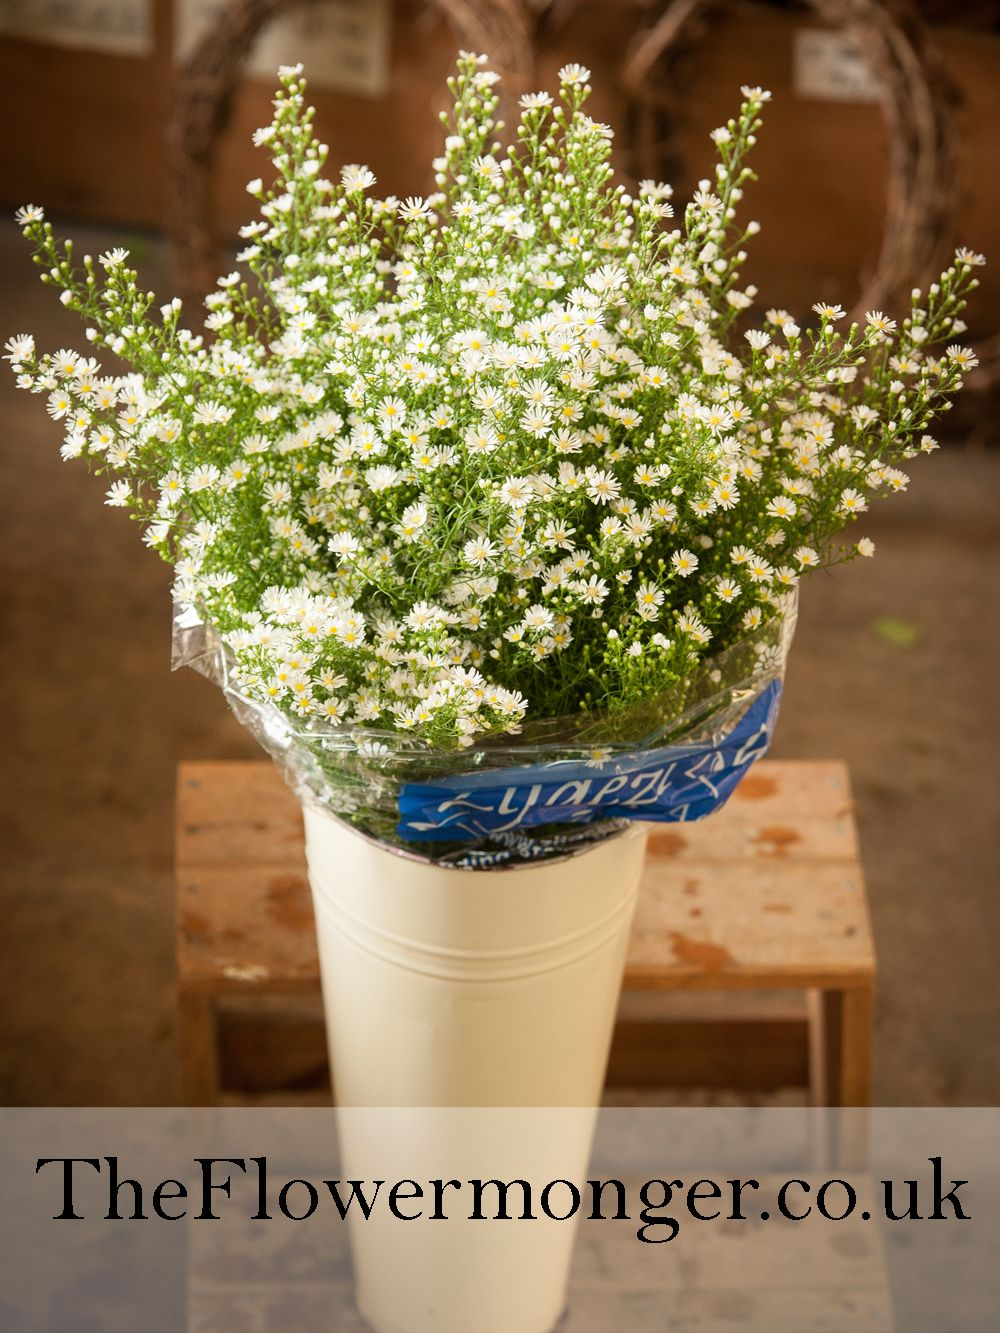 White September Flower. Available in bunches of 5 stems